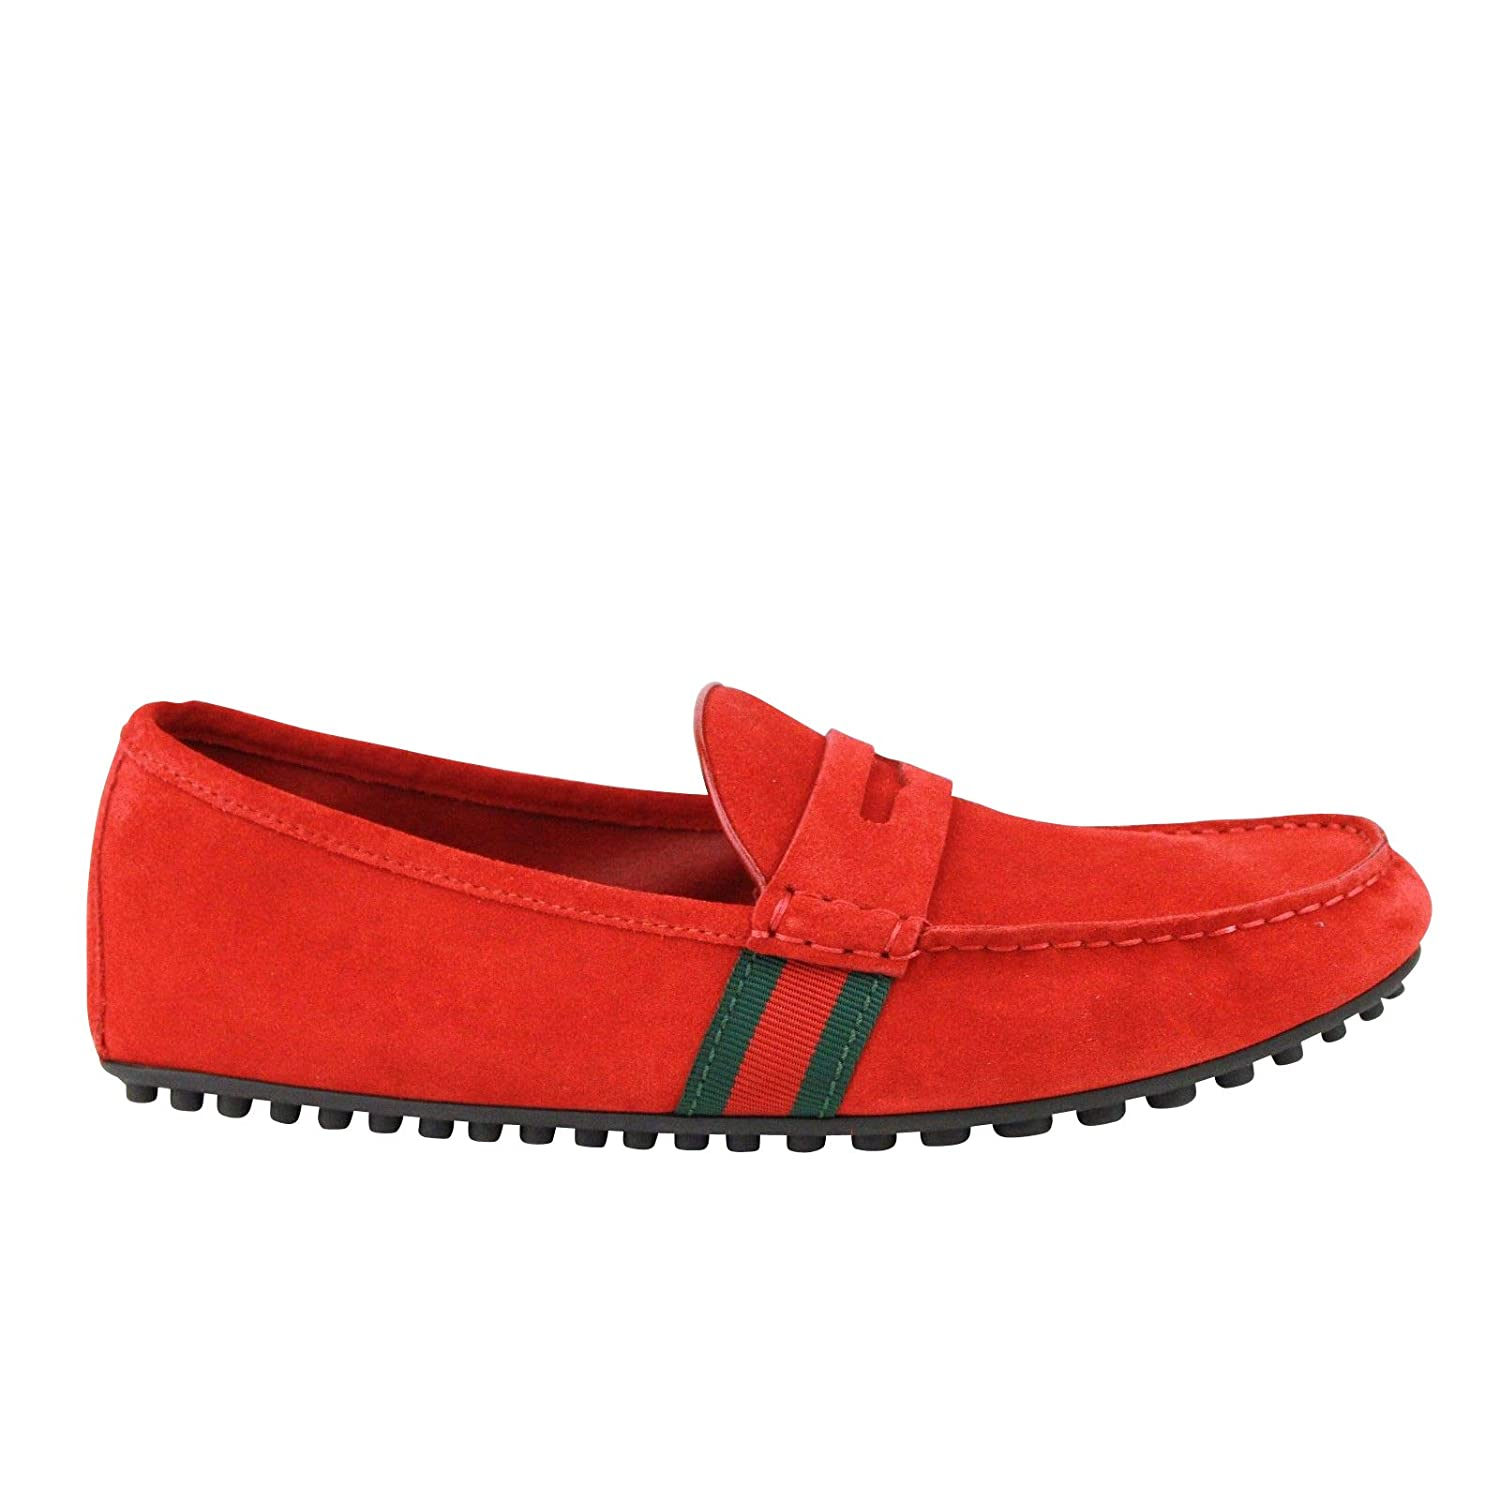 0427eebb996 Amazon.com  Gucci Driver Loafer Red Suede Shoes GRG Web Detail 407411 6460   Shoes